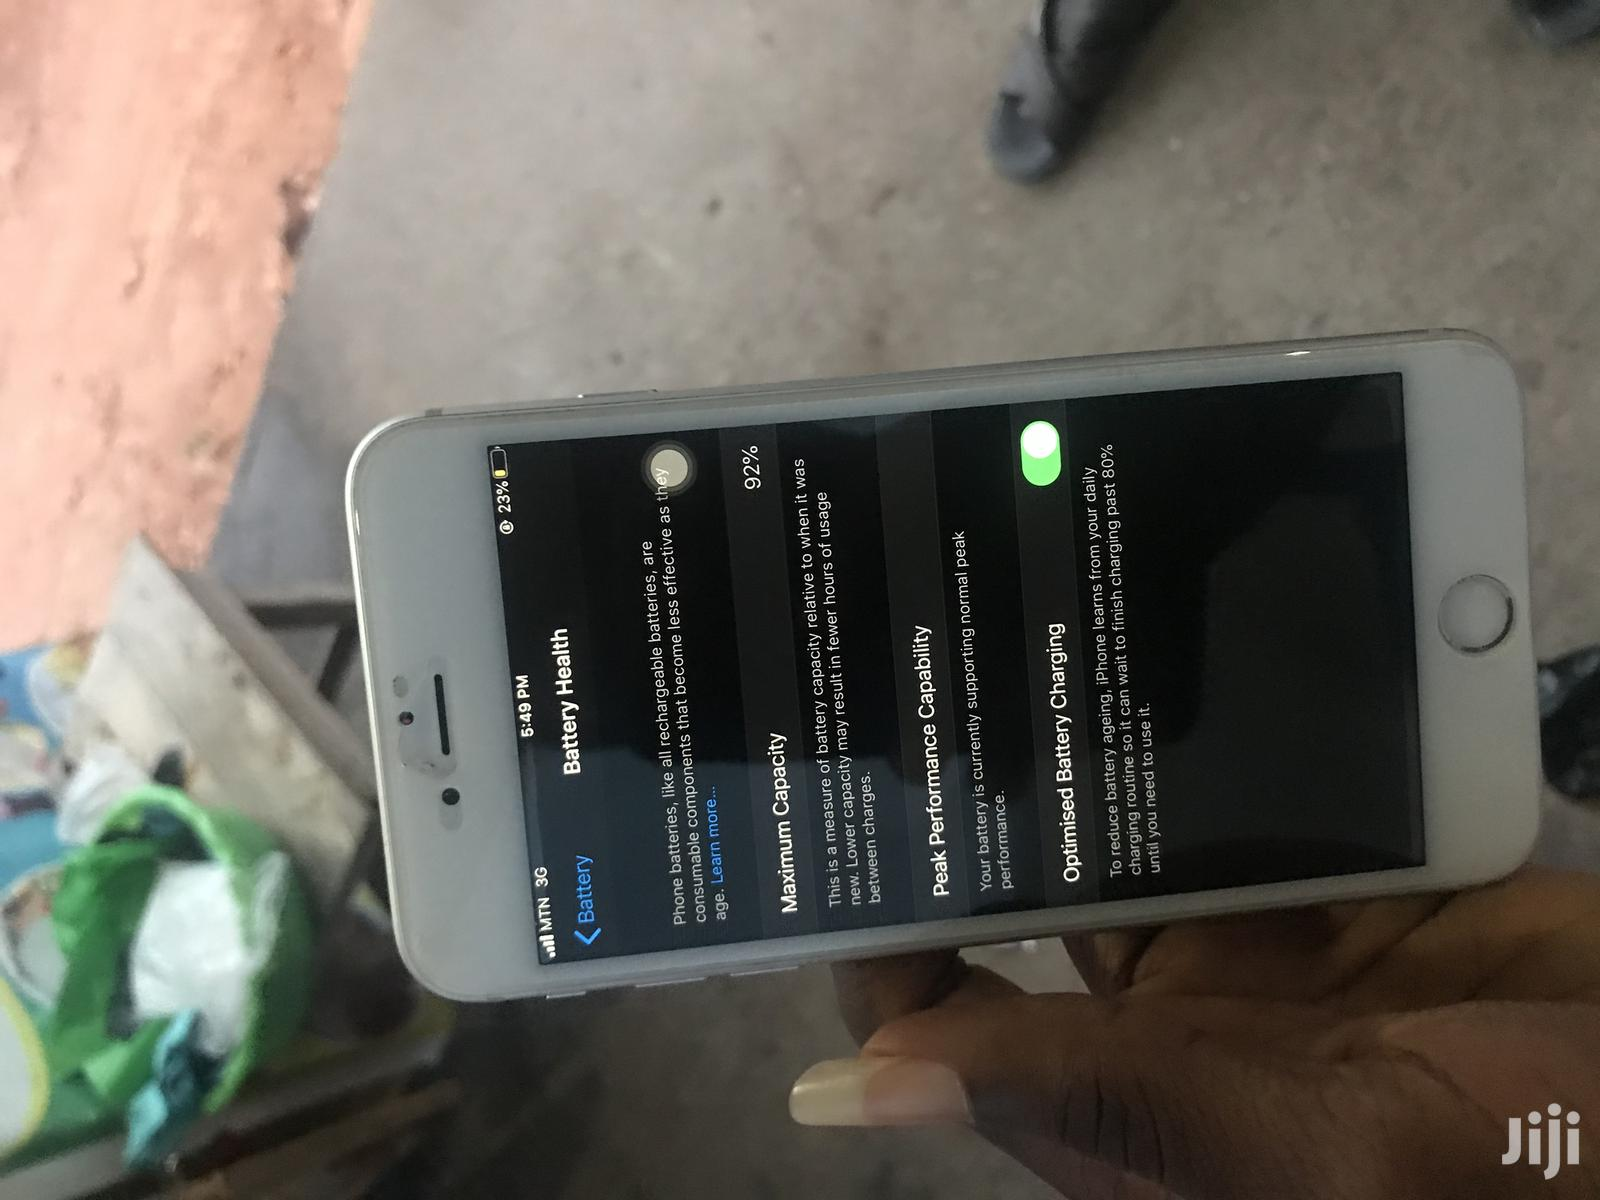 Apple iPhone 6s Plus 64 GB Silver | Mobile Phones for sale in Accra Metropolitan, Greater Accra, Ghana